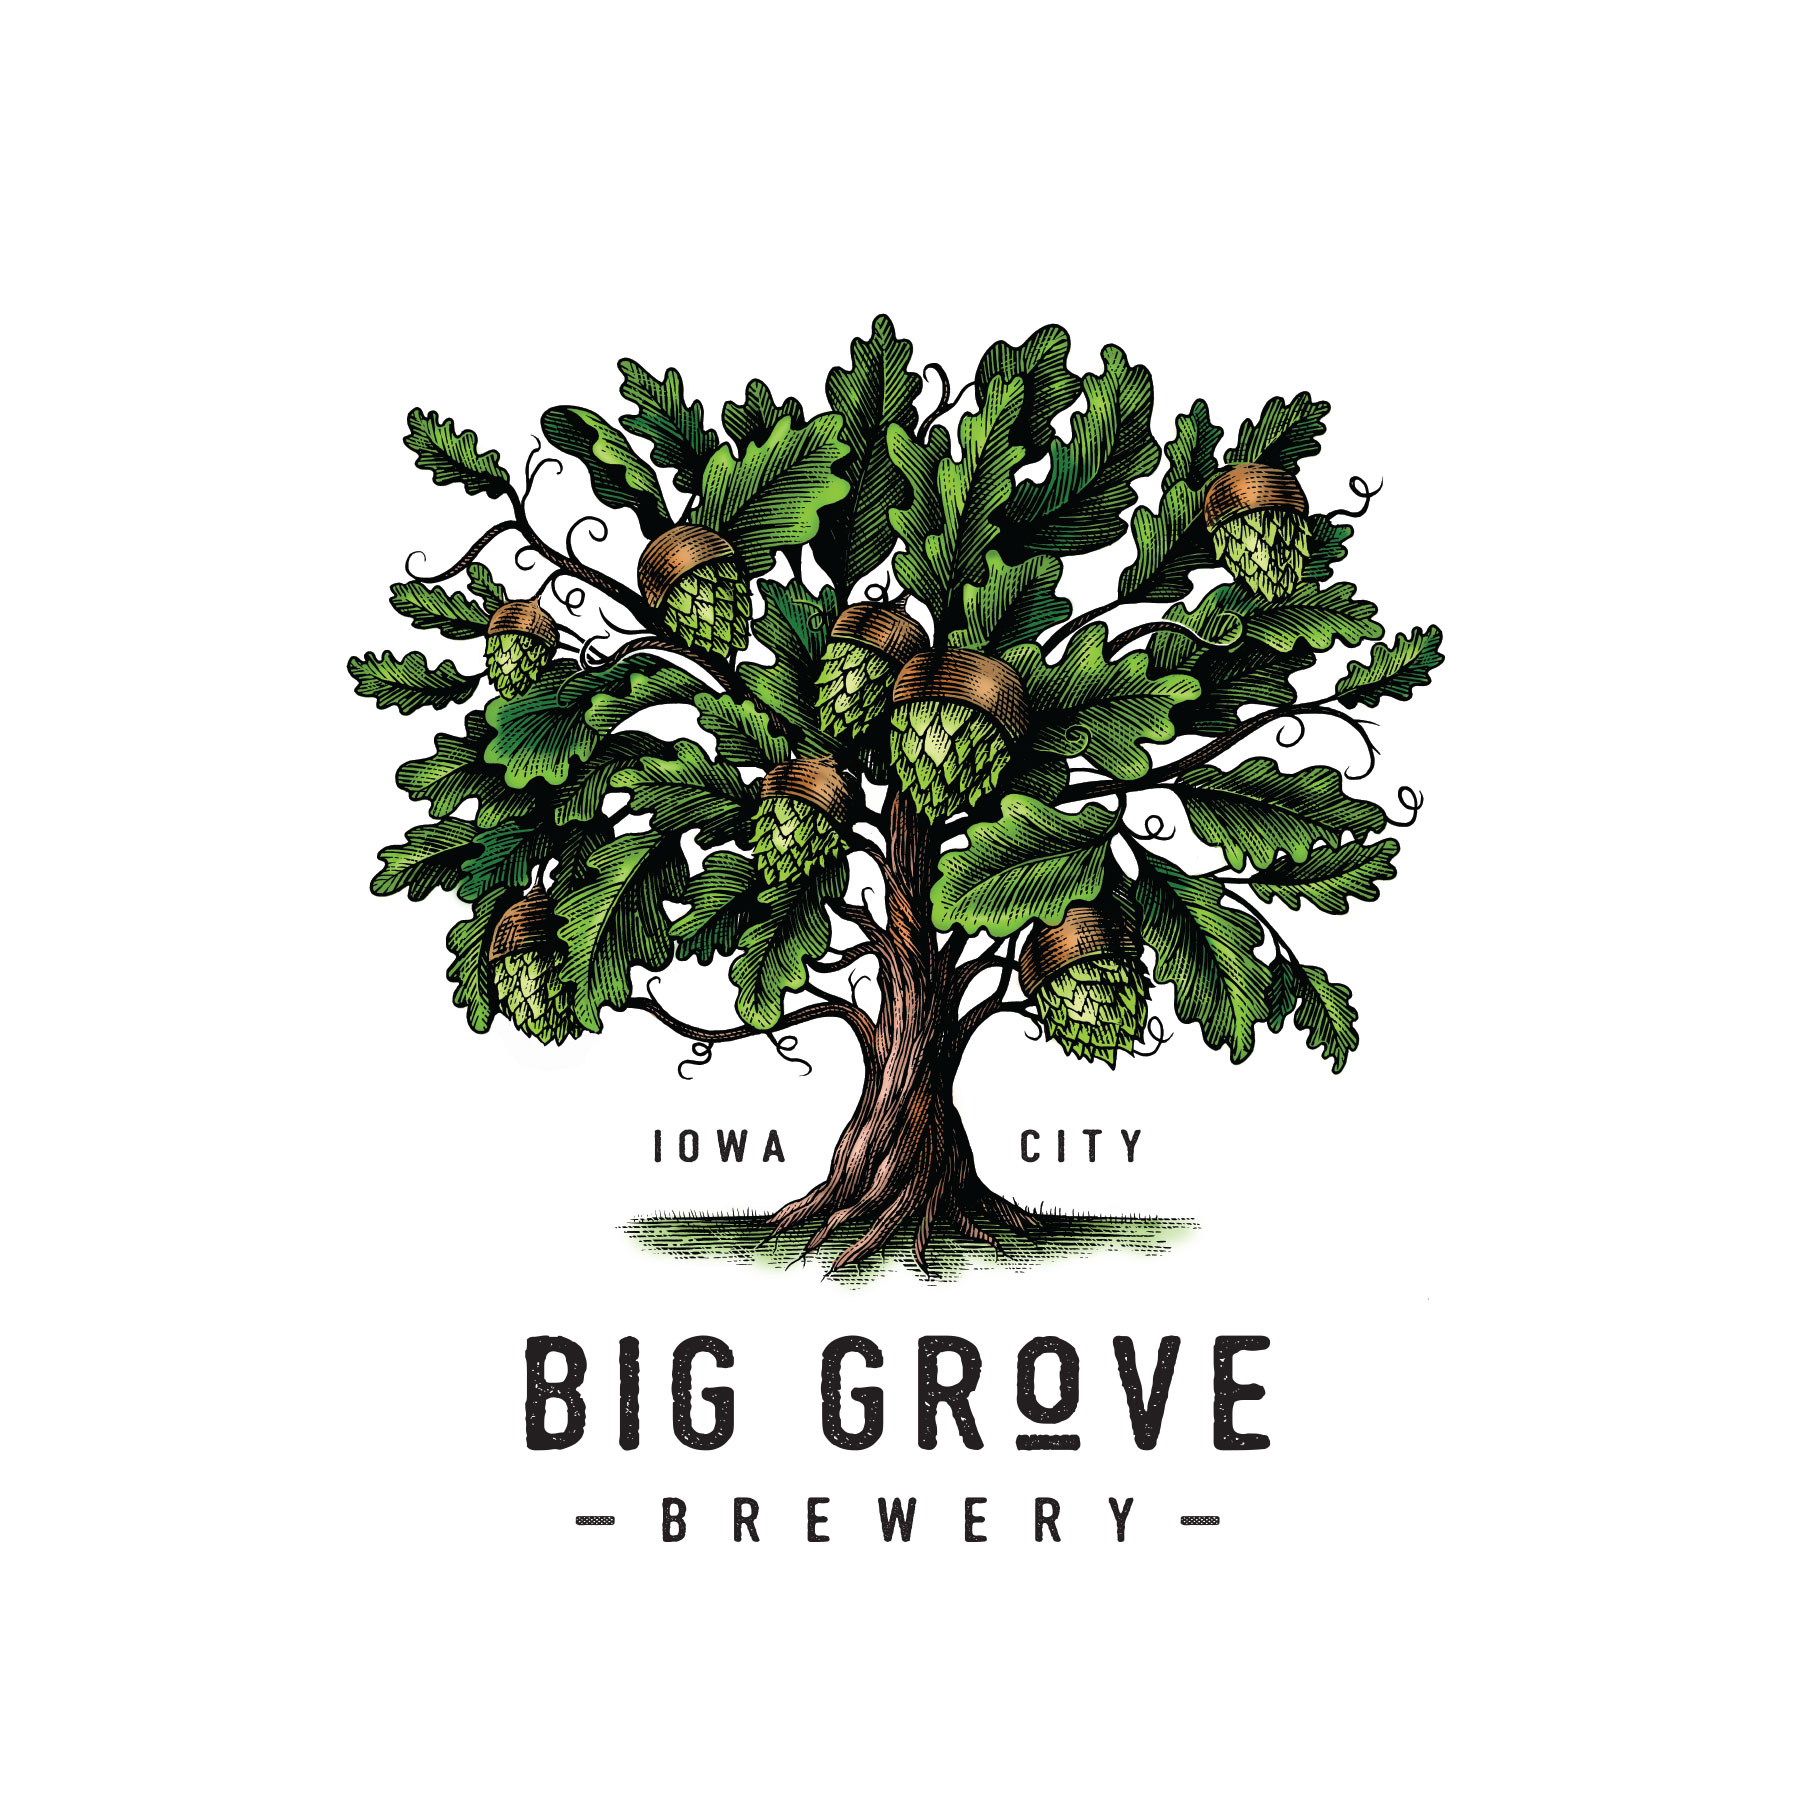 Big Grove Brewery in Iowa City is hosting the Post Ride Fiesta serving up a beer and local food pairing.